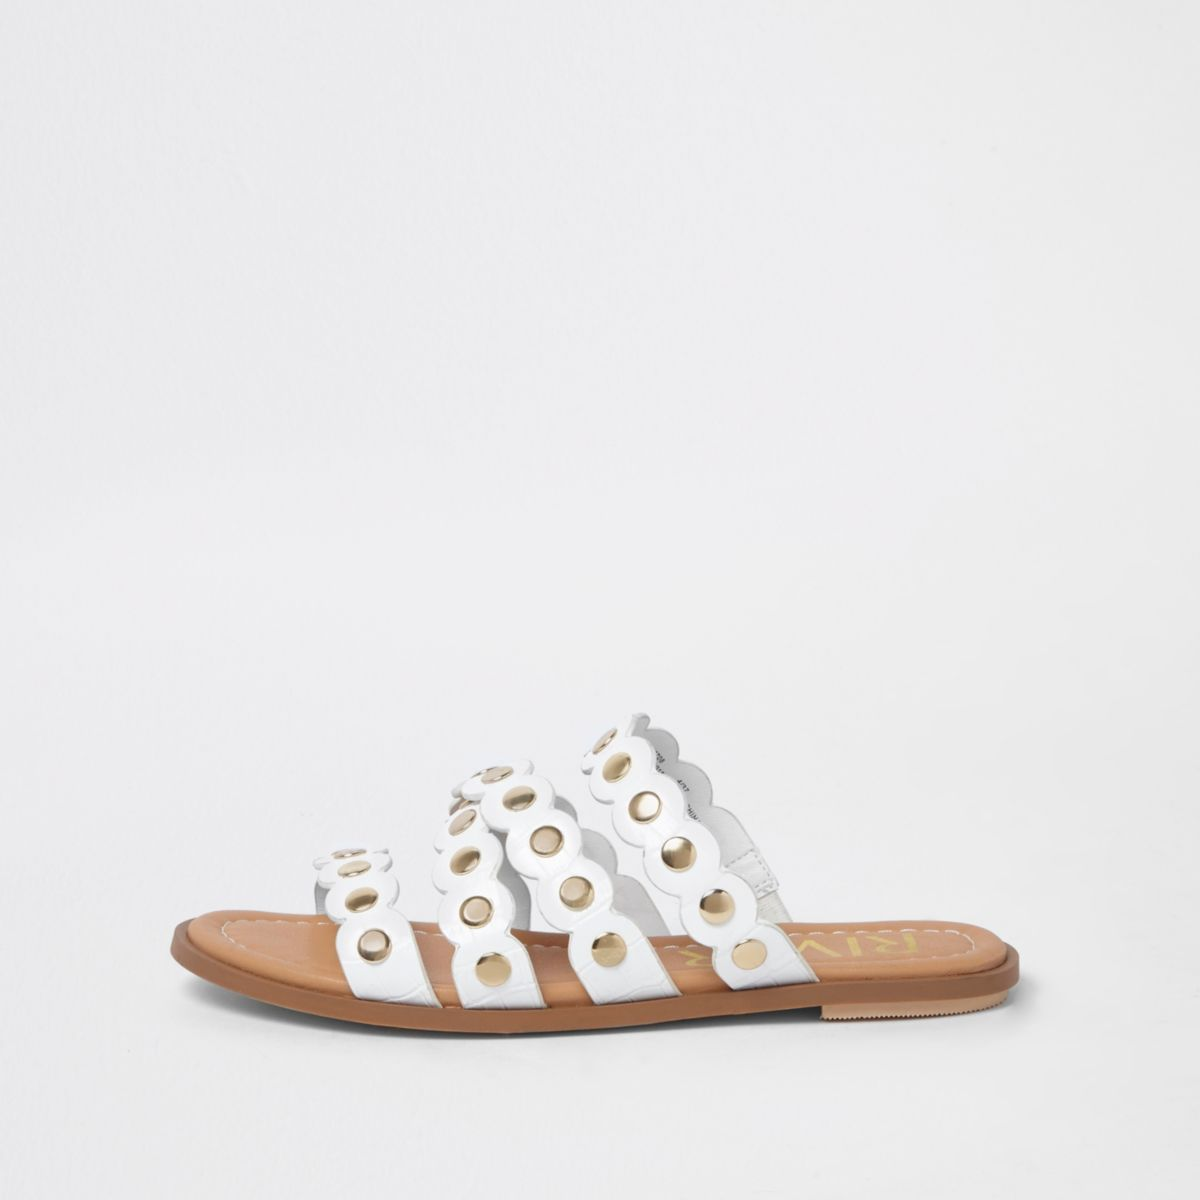 White Scallop Studded Mule Sandals by River Island